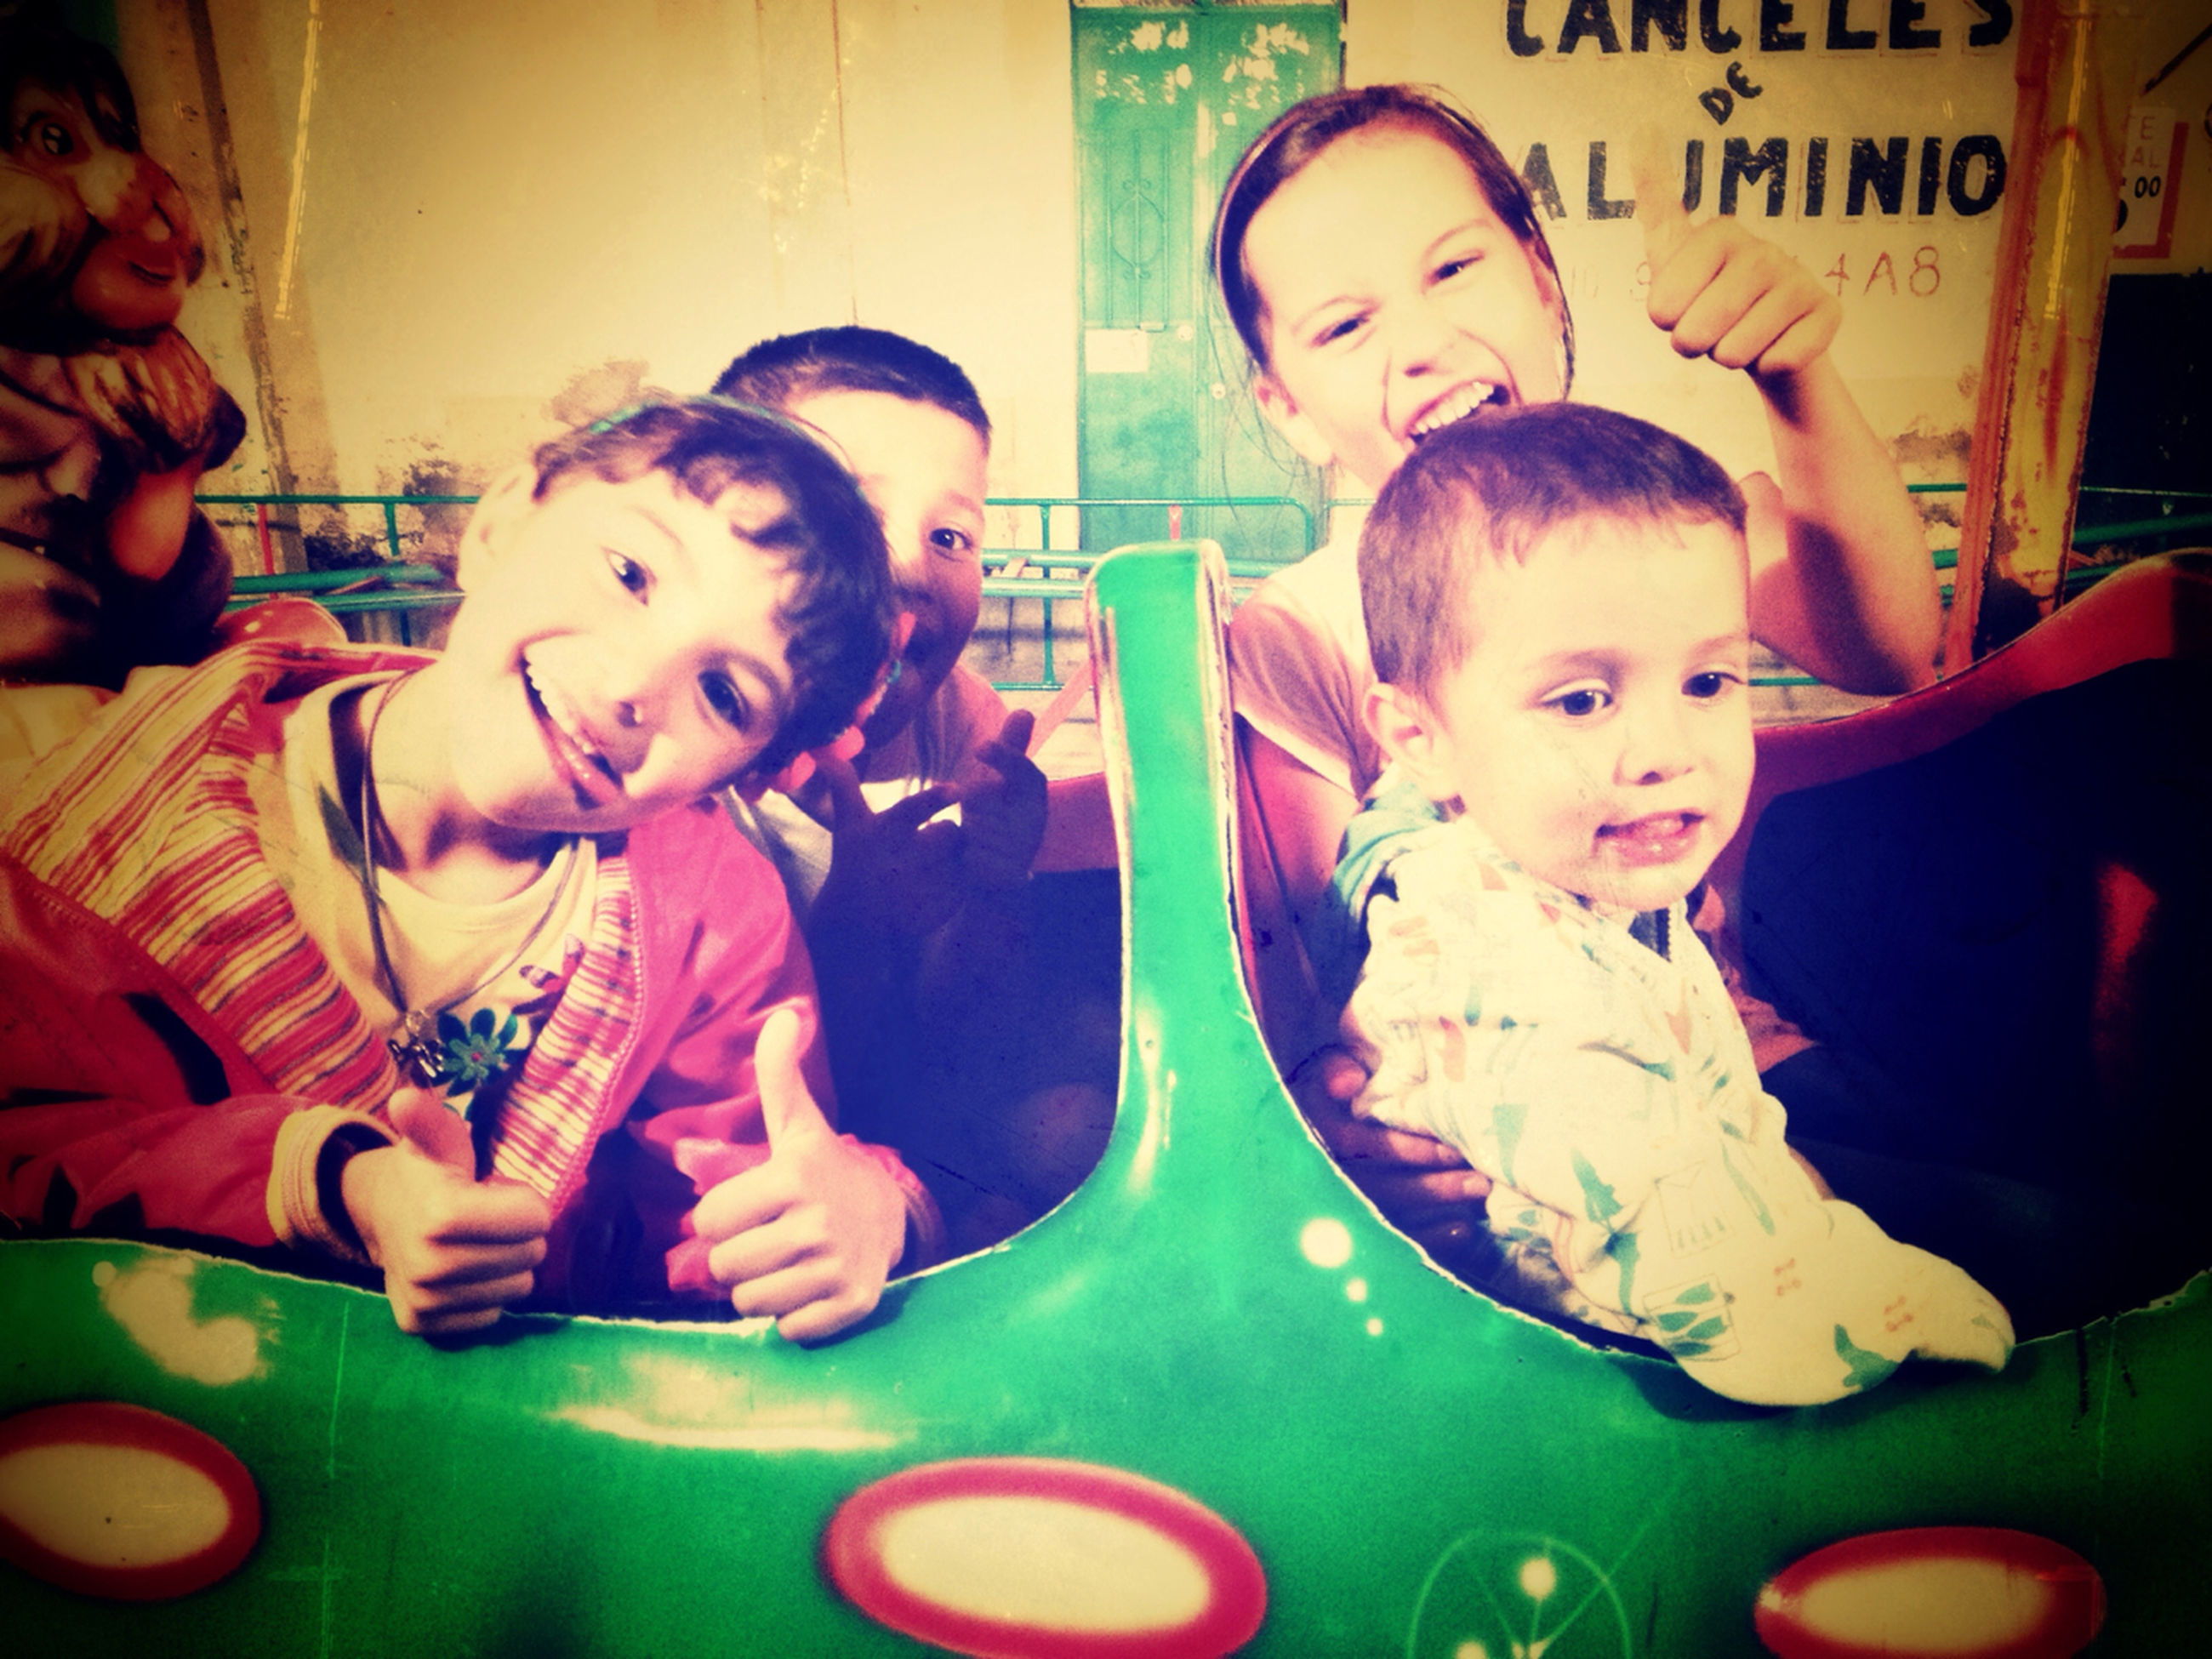 indoors, person, lifestyles, childhood, leisure activity, boys, togetherness, elementary age, bonding, casual clothing, communication, happiness, smiling, love, holding, fun, playing